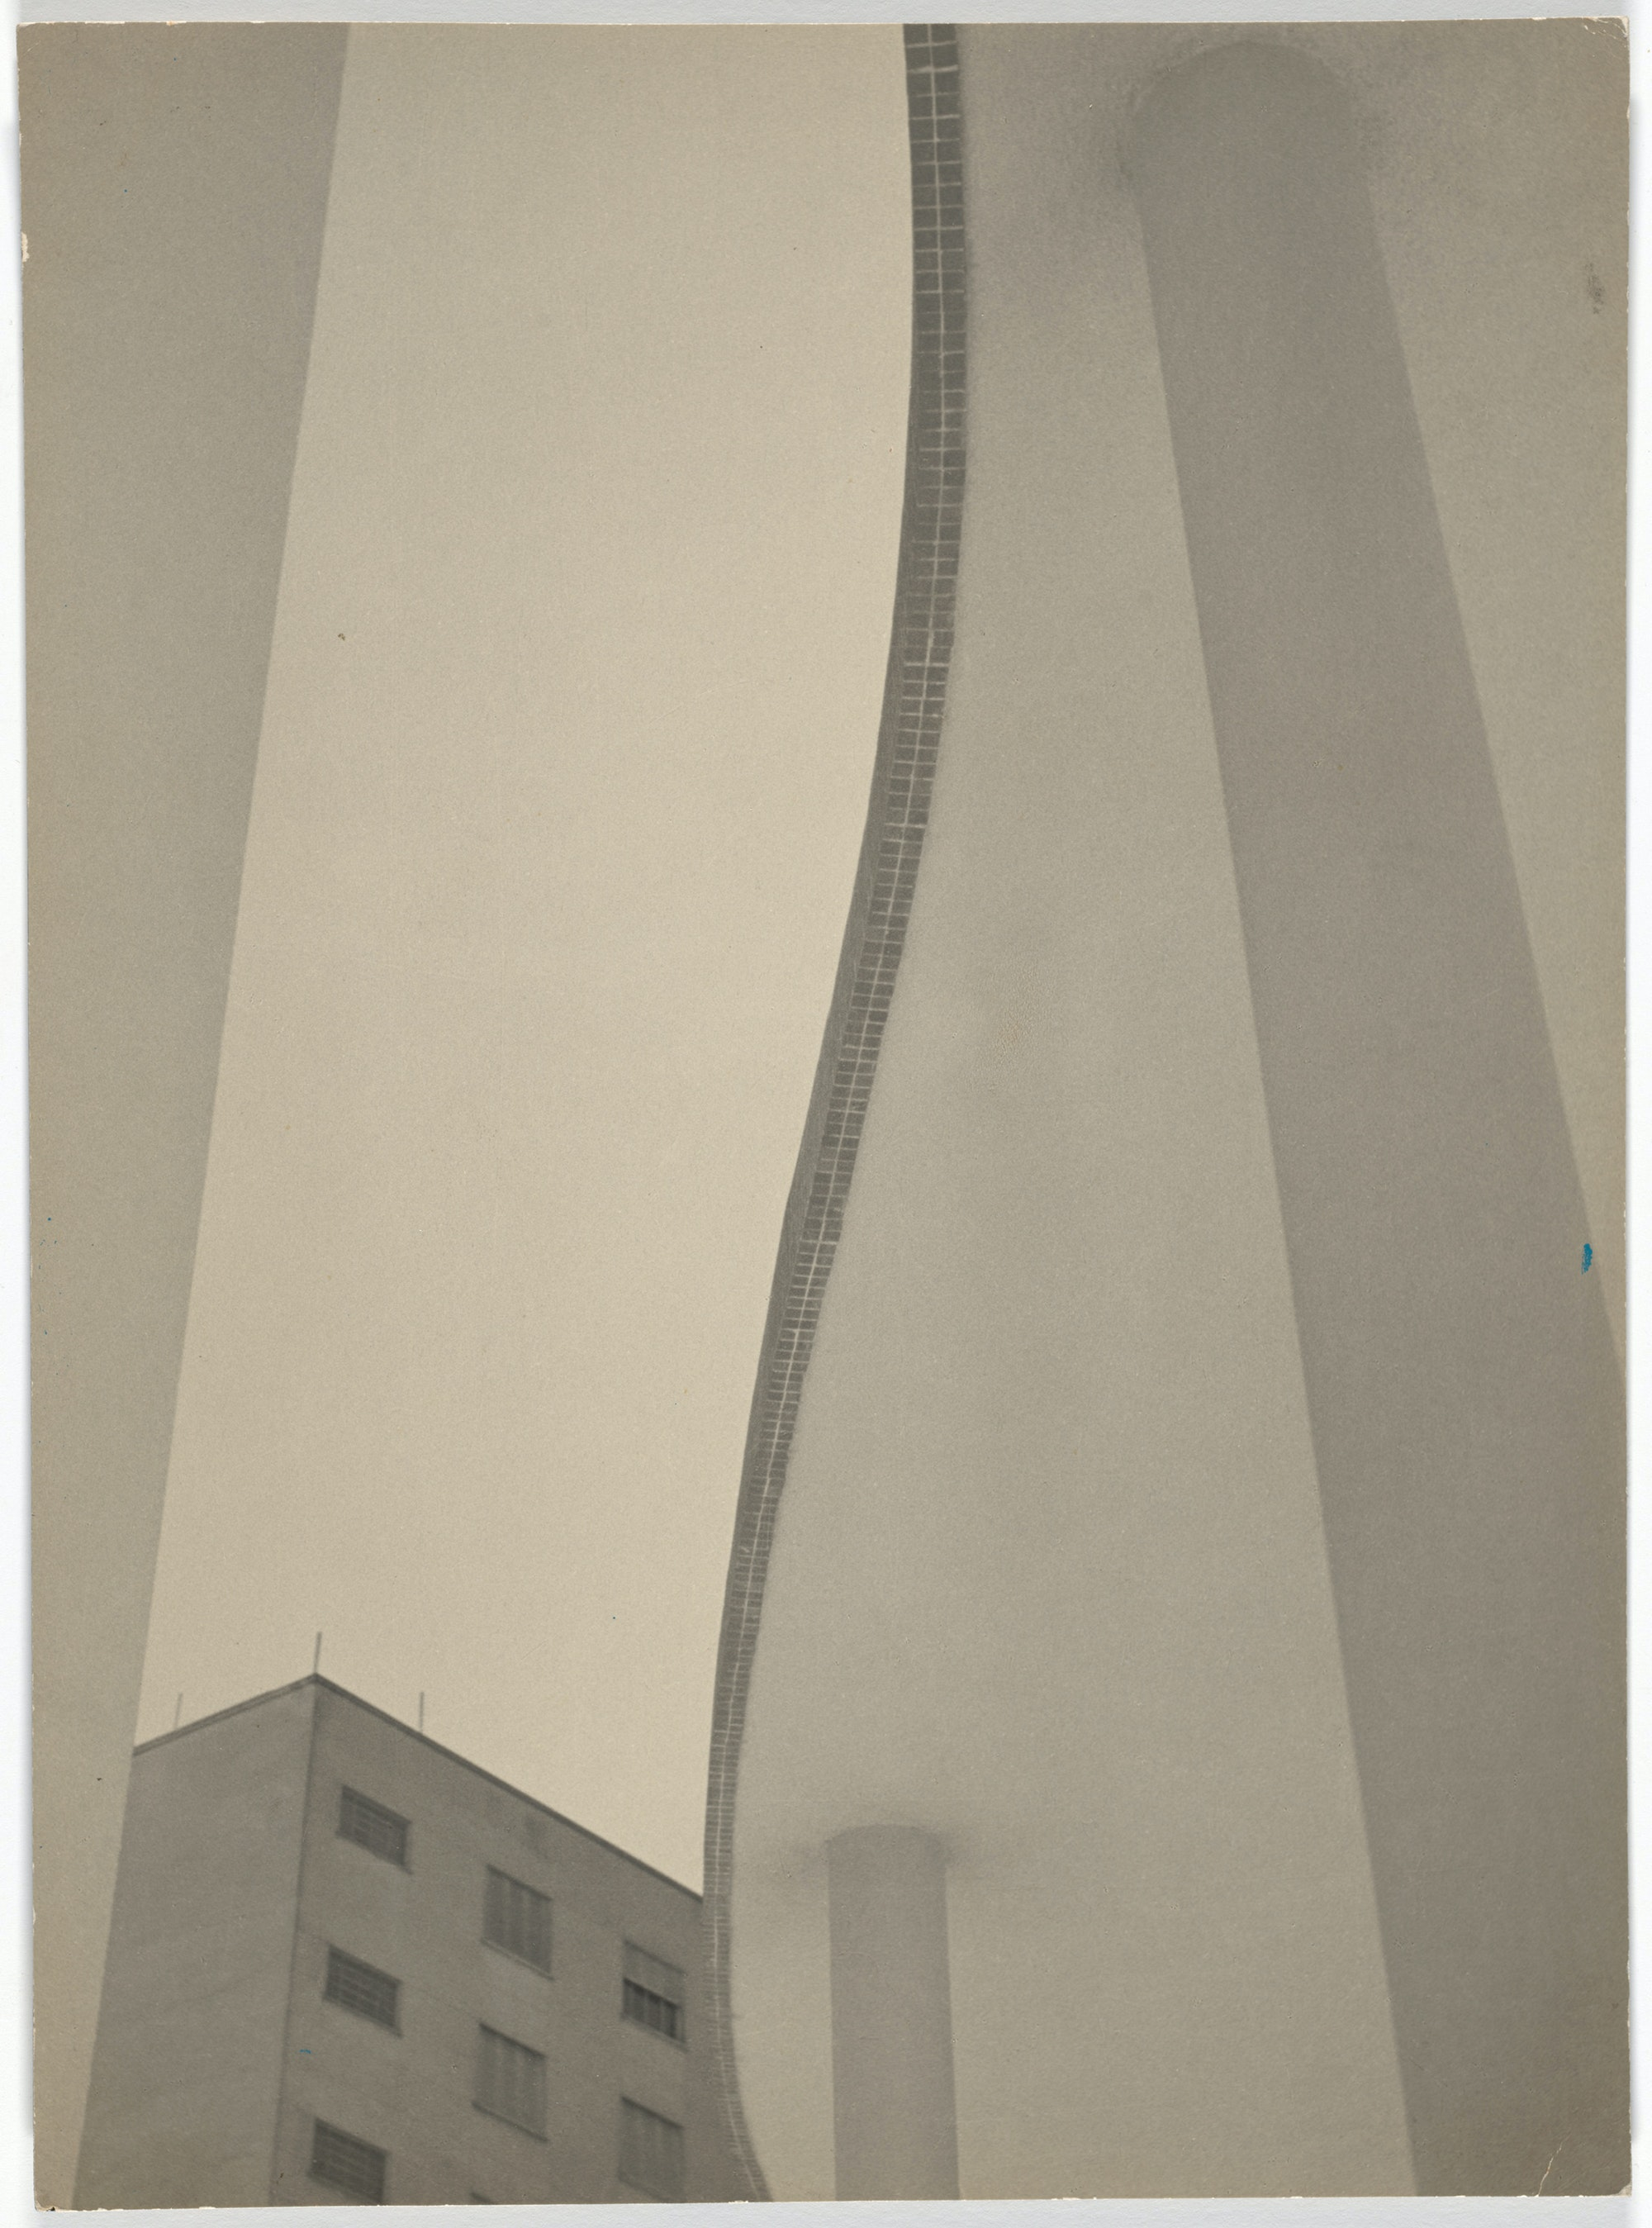 Gertrudes Altschul, <em>Lines and Tones (Linhas e tons)</em>, 1953. Gelatin silver print, 14 7/8 x 11 inches. The Museum of Modern Art, New York. Acquired through the generosity of Amie Rath Nuttall. © 2021 Estate of Gertrudes Altschul.